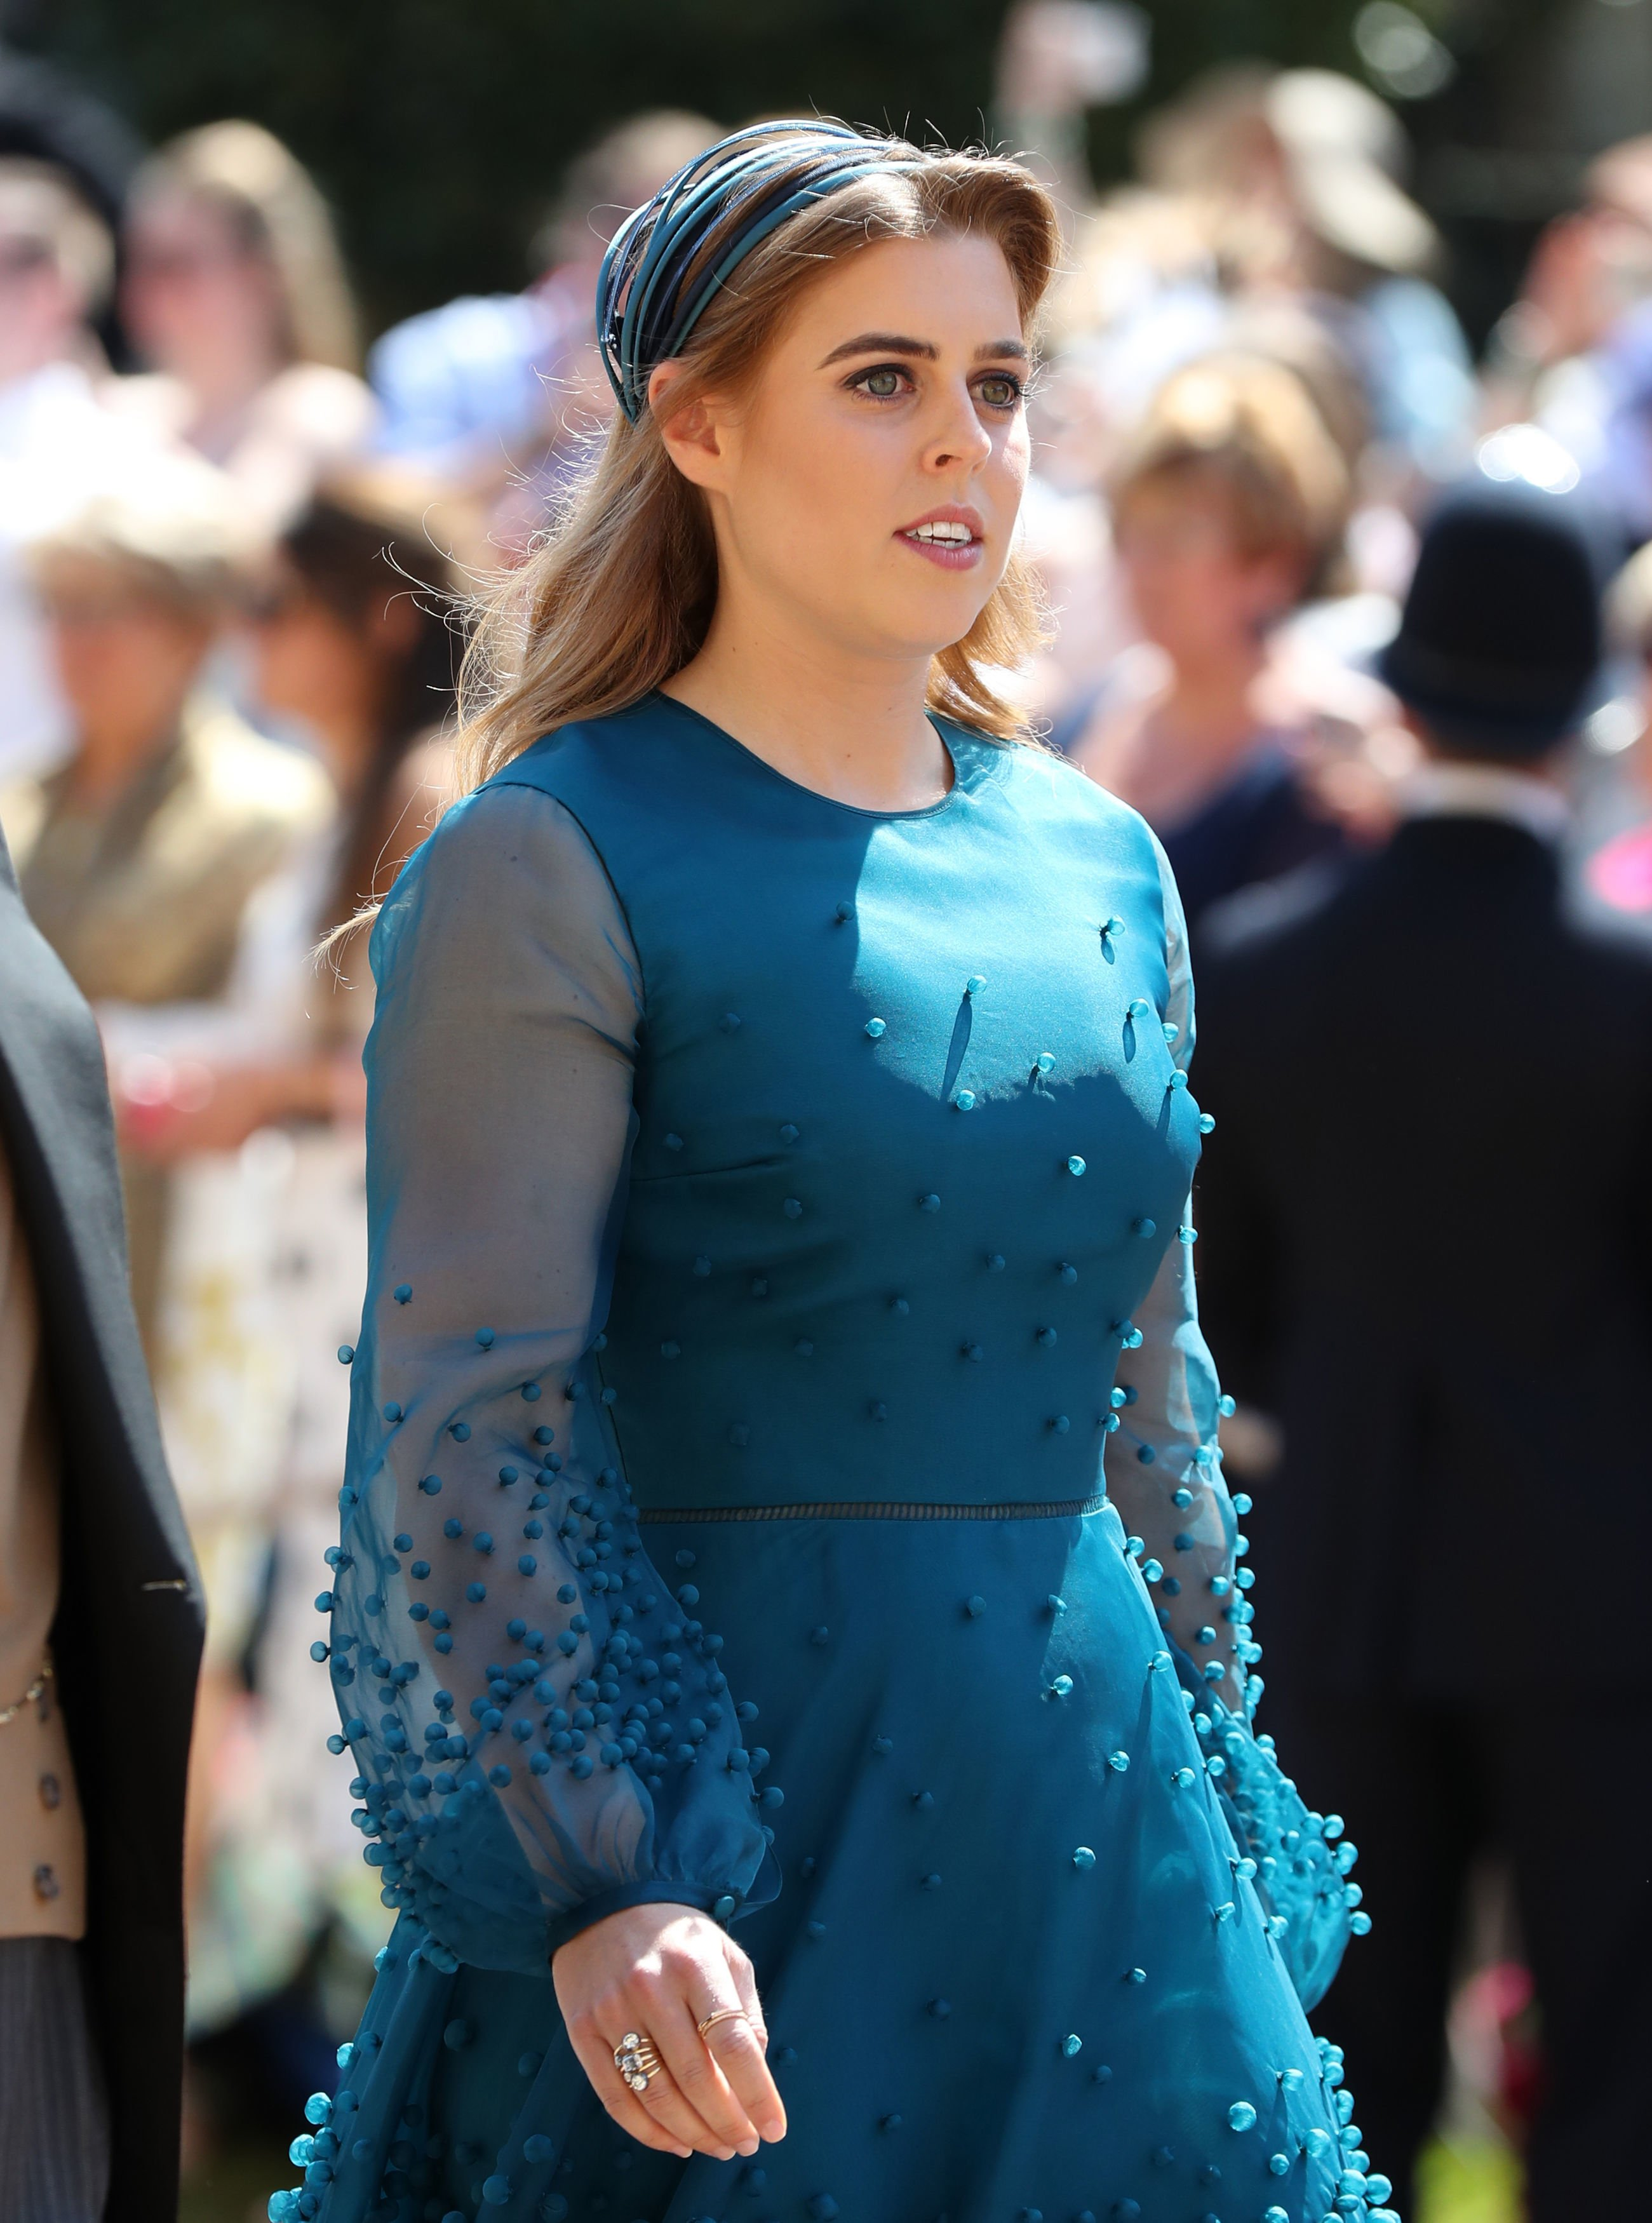 Princess Beatrice on May 19, 2018 in Windsor, England | Photo: Getty Images